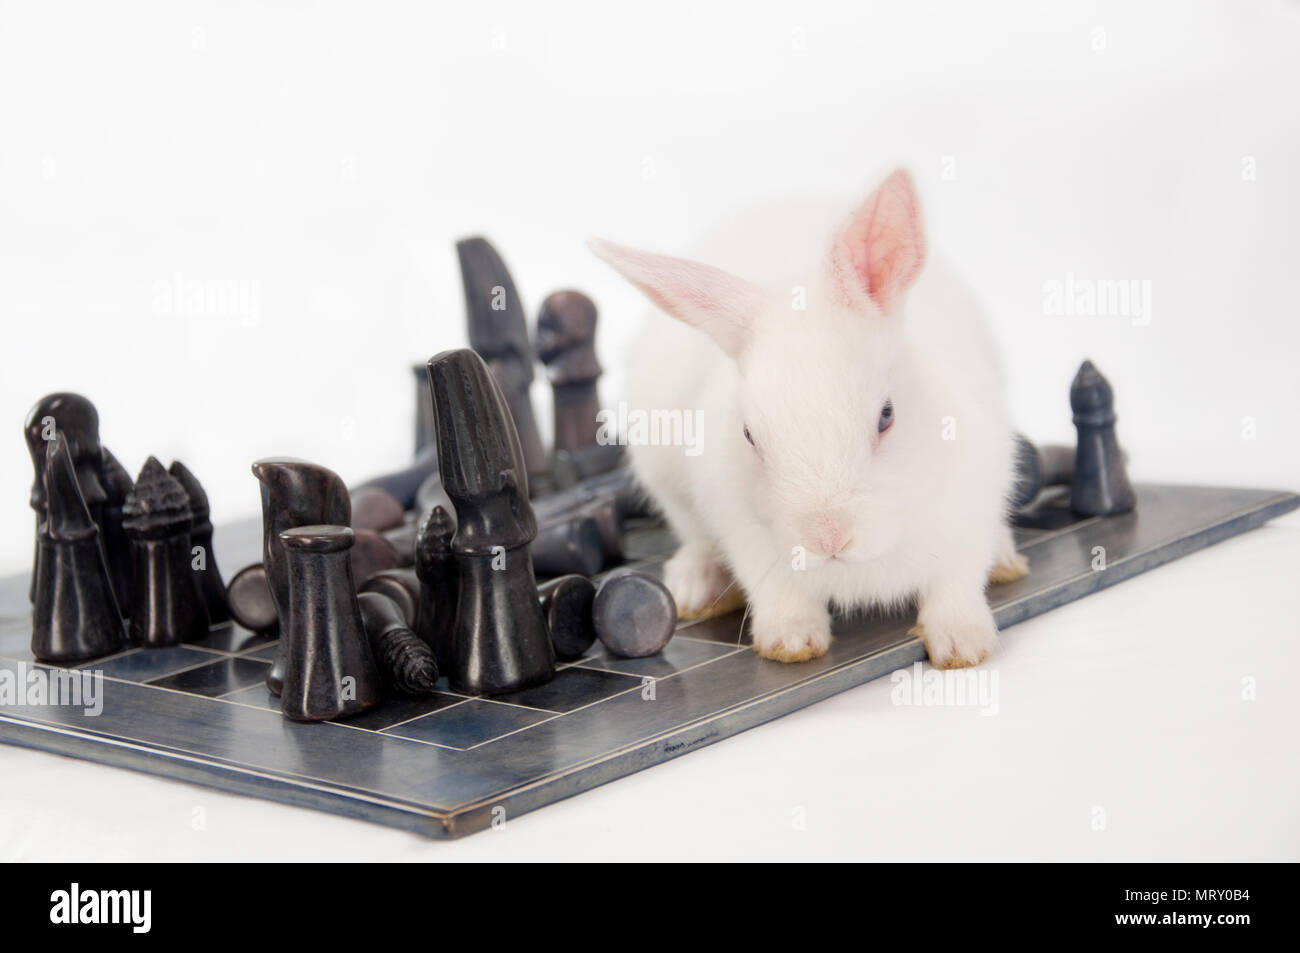 Rabbit Walking on a ChessBoard - Stock Image